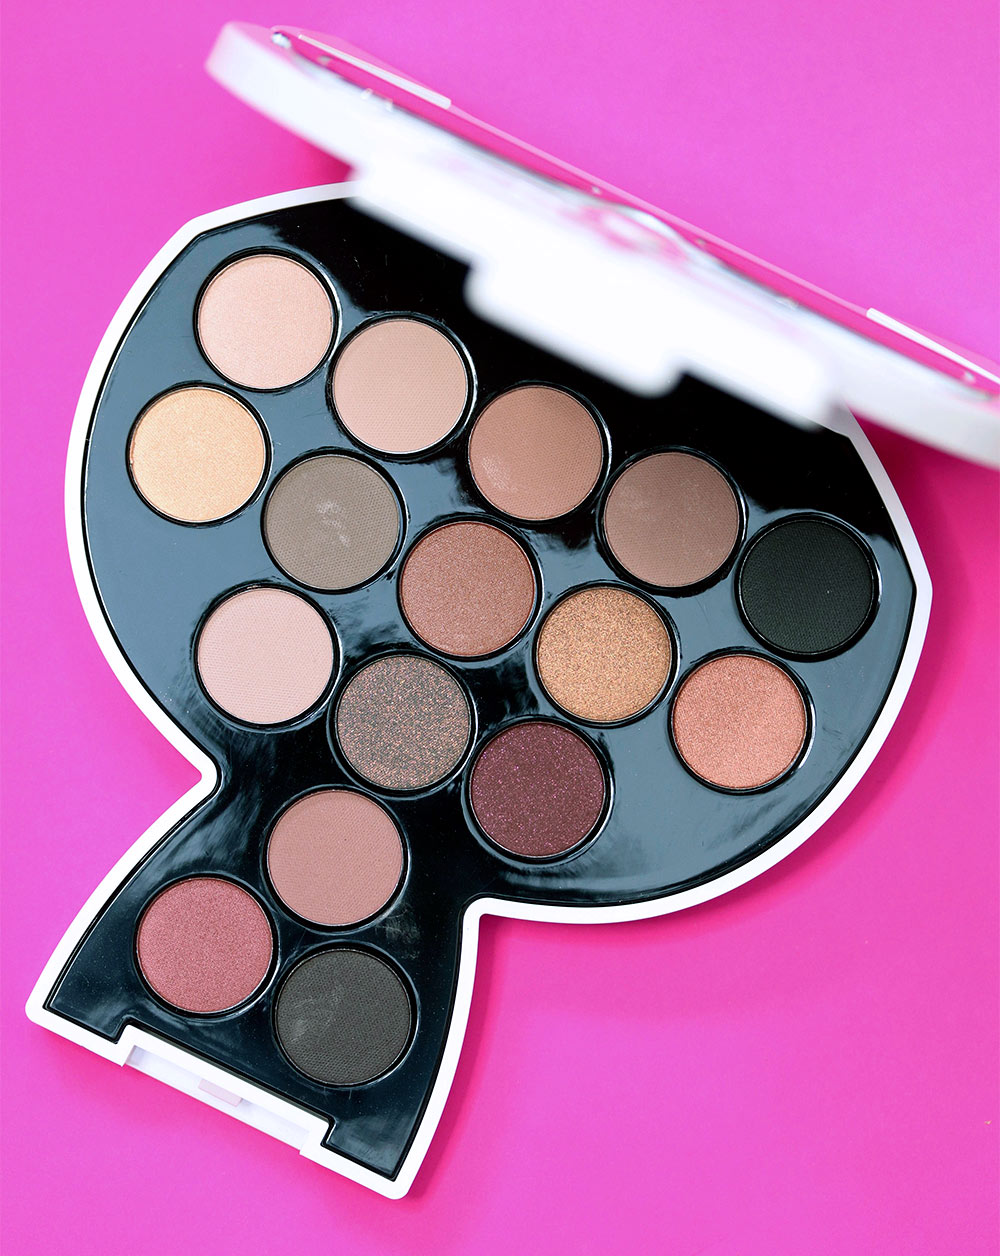 karl lagerfeld model co choupette palette 2